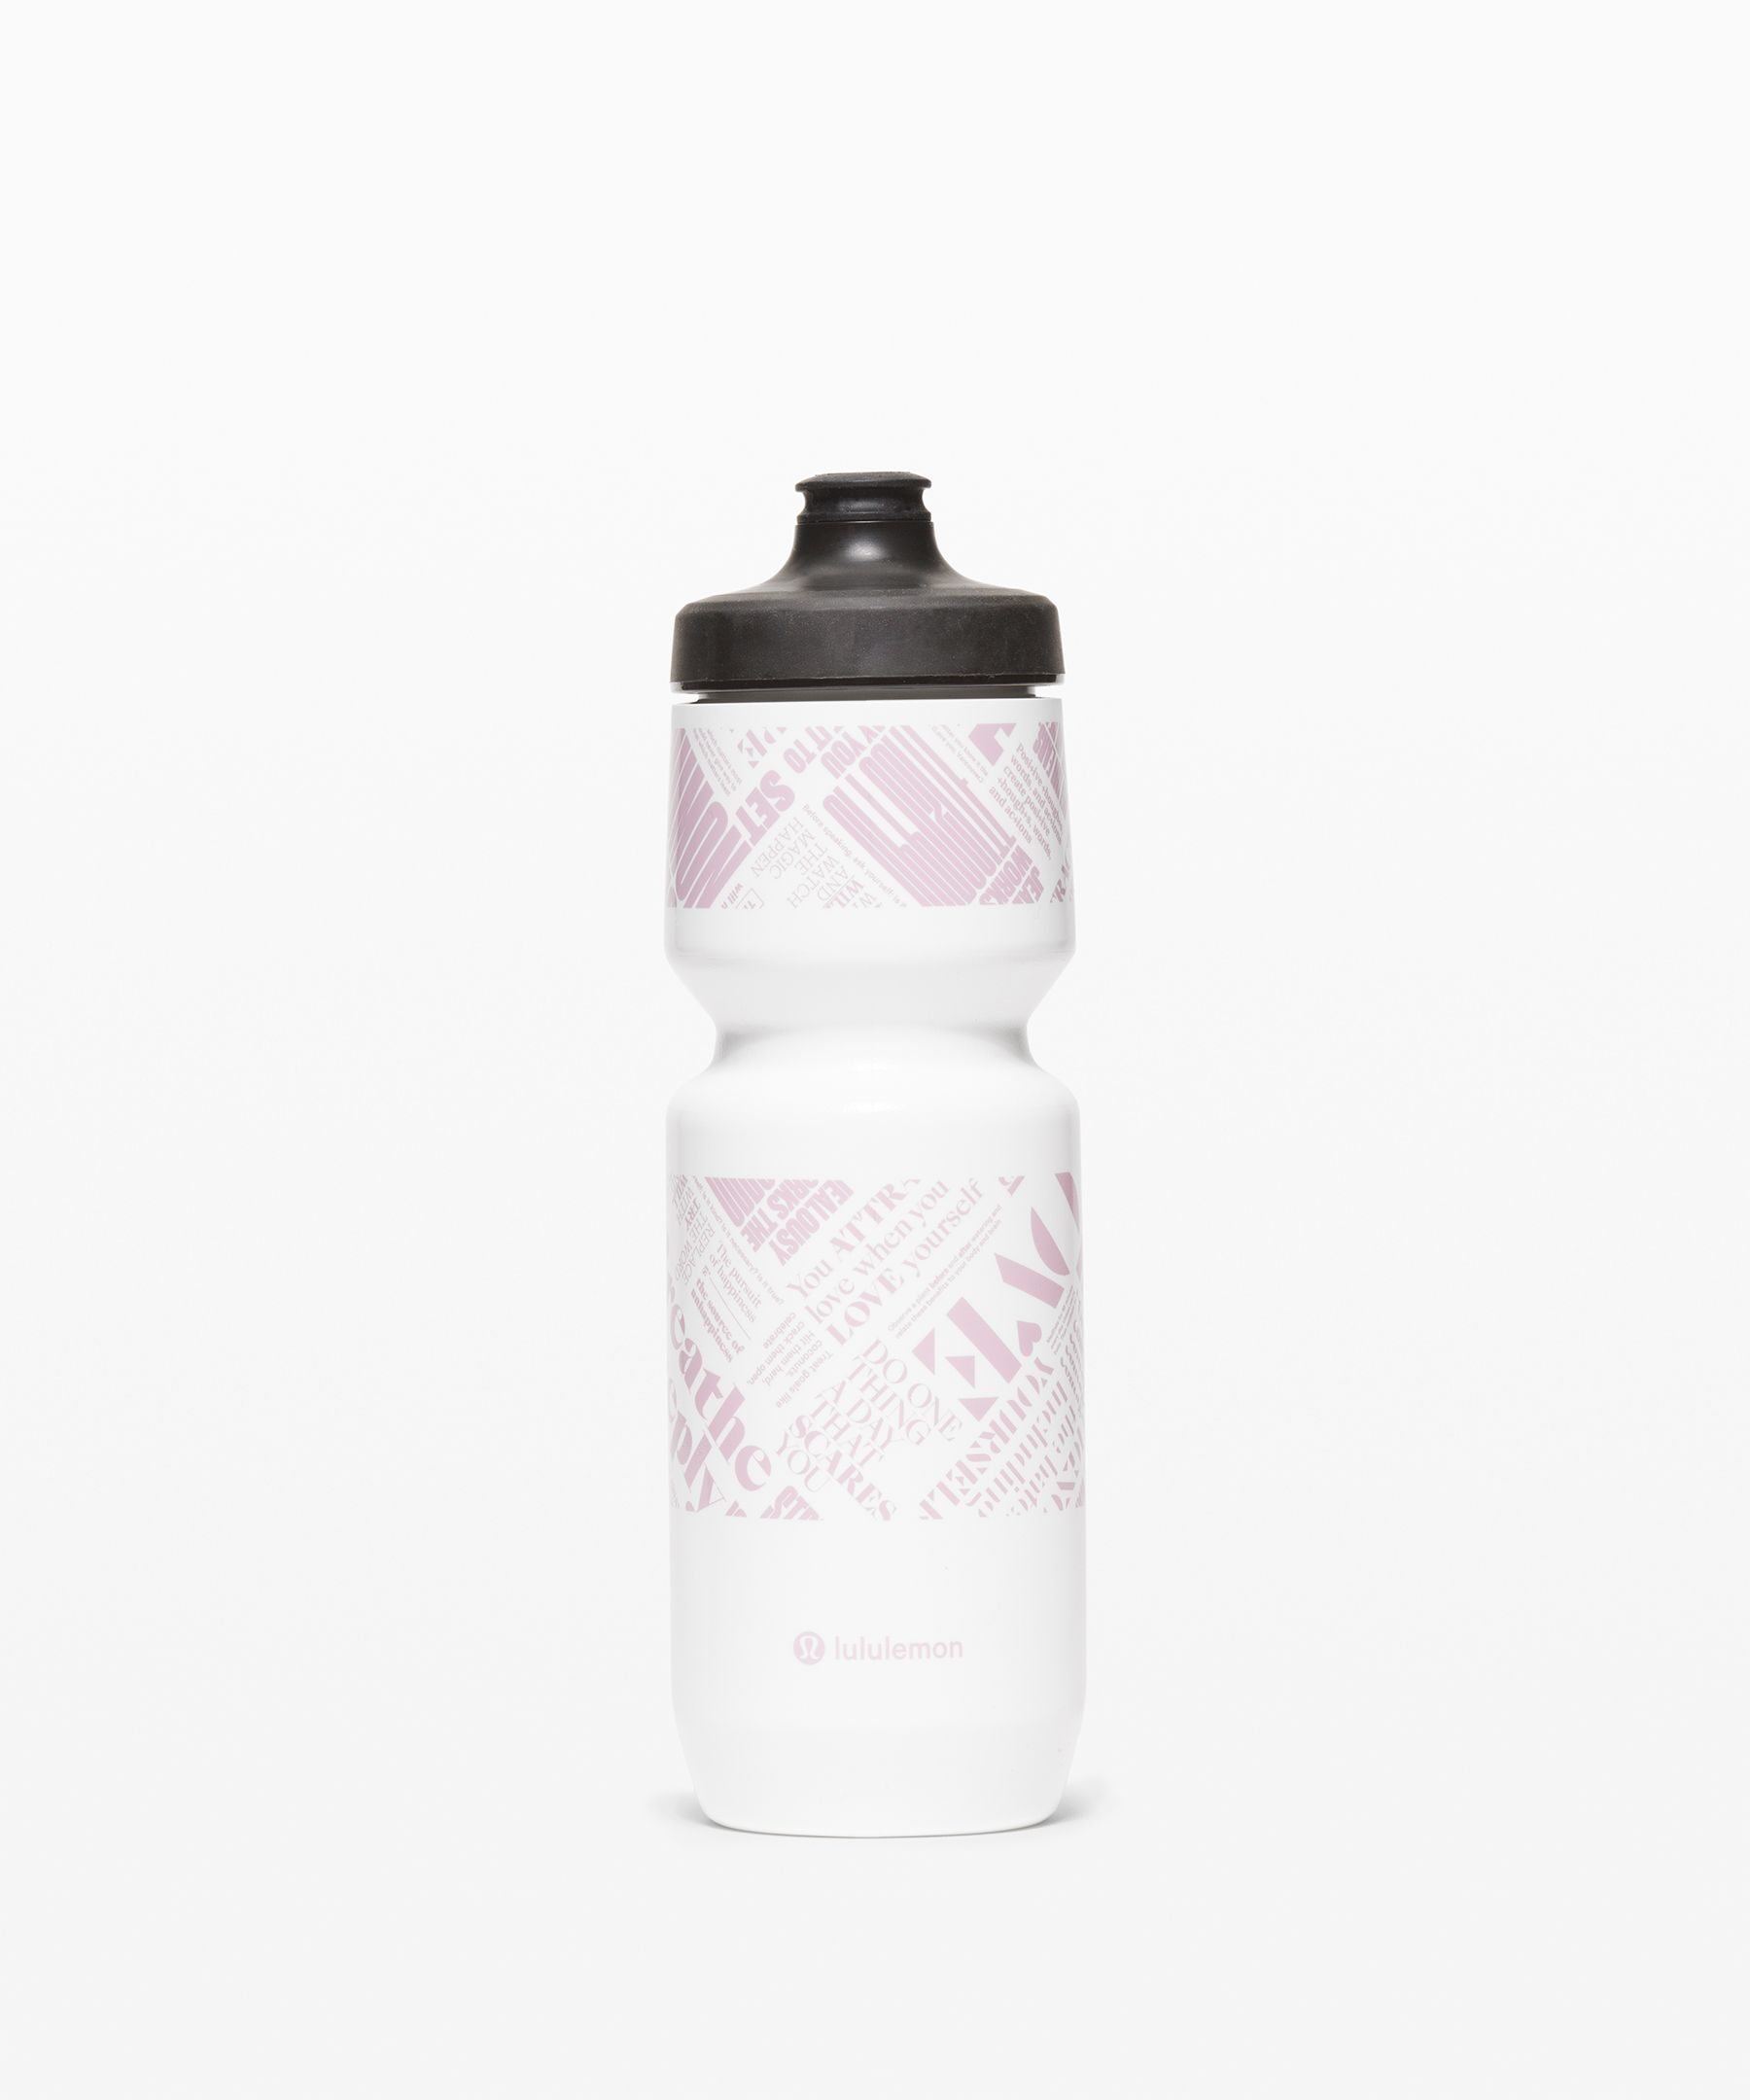 This squeezable bottle was  designed for high speeds, high  tension, and easy-access  hydration.